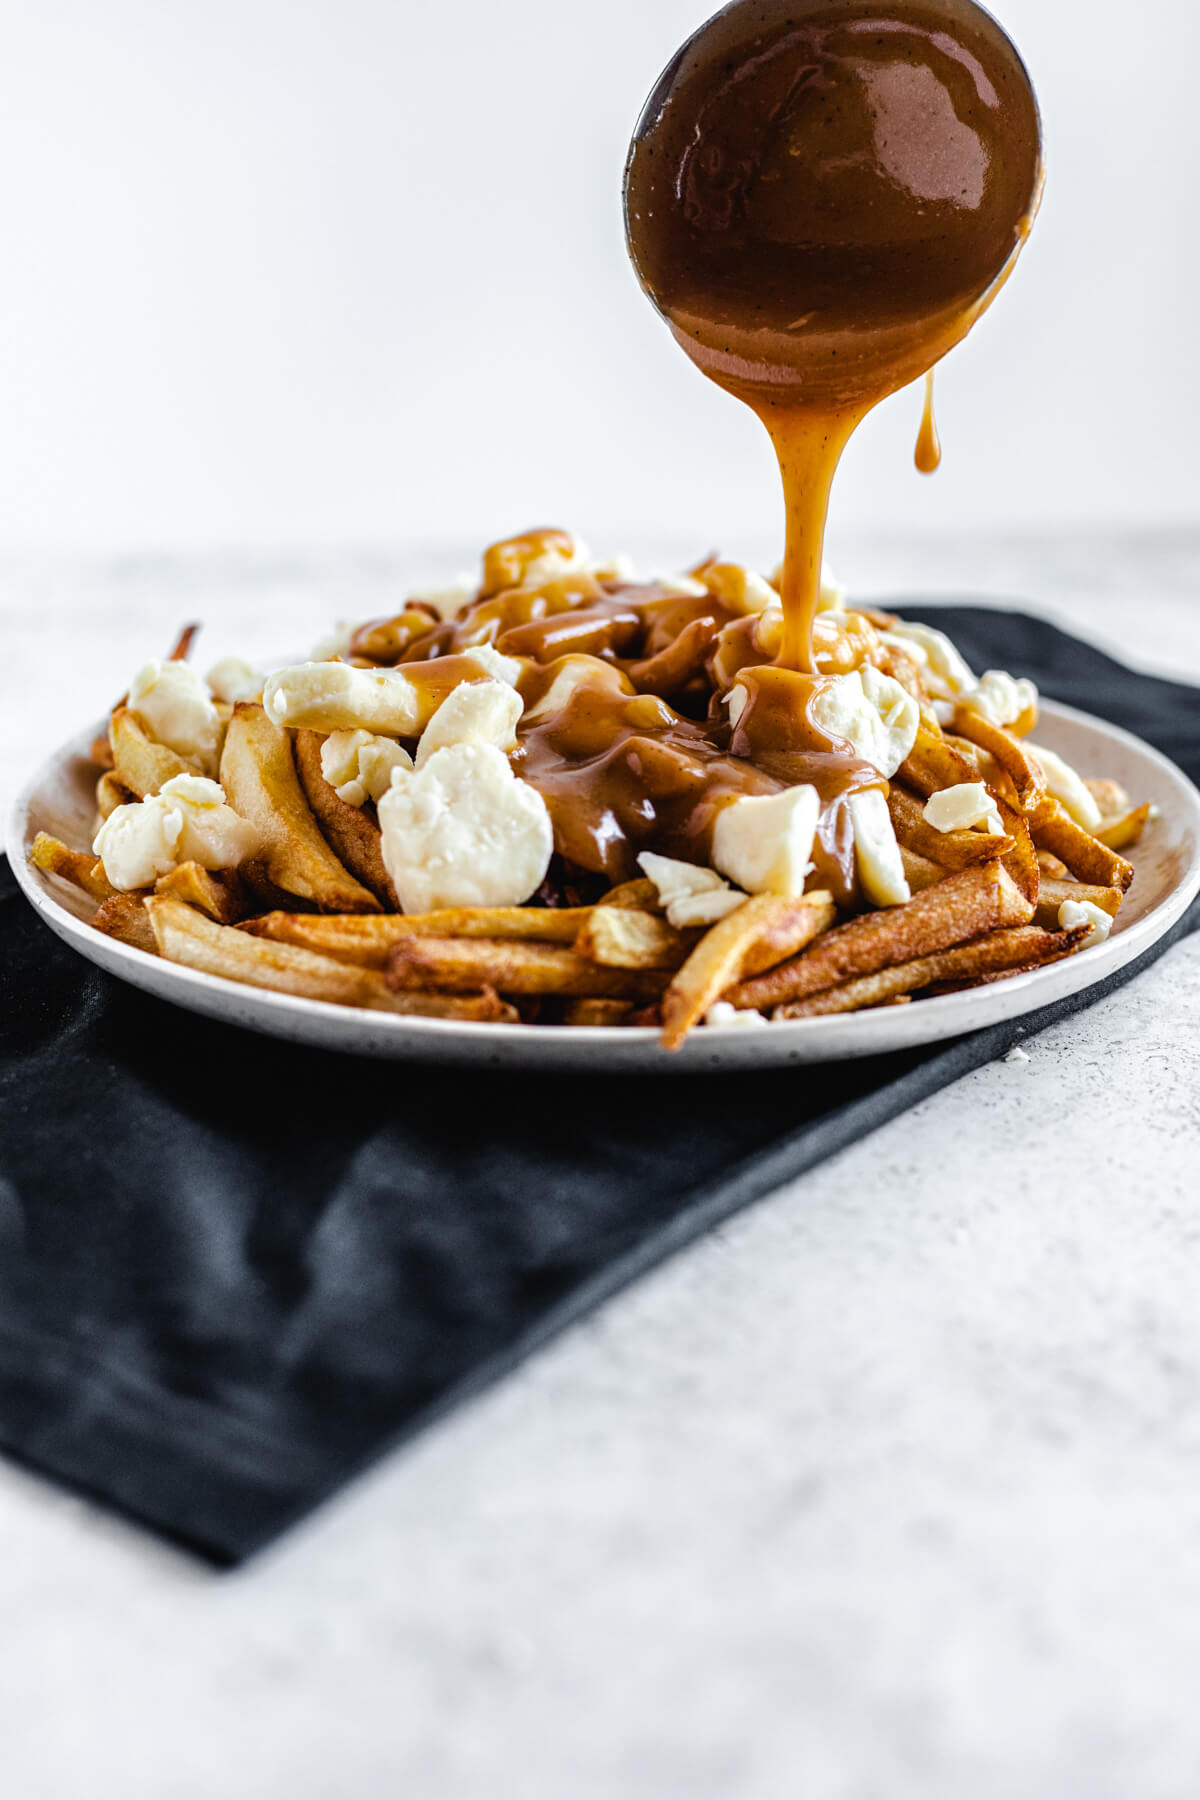 pouring gravy from a ladle onto a plate of fries and cheese curds